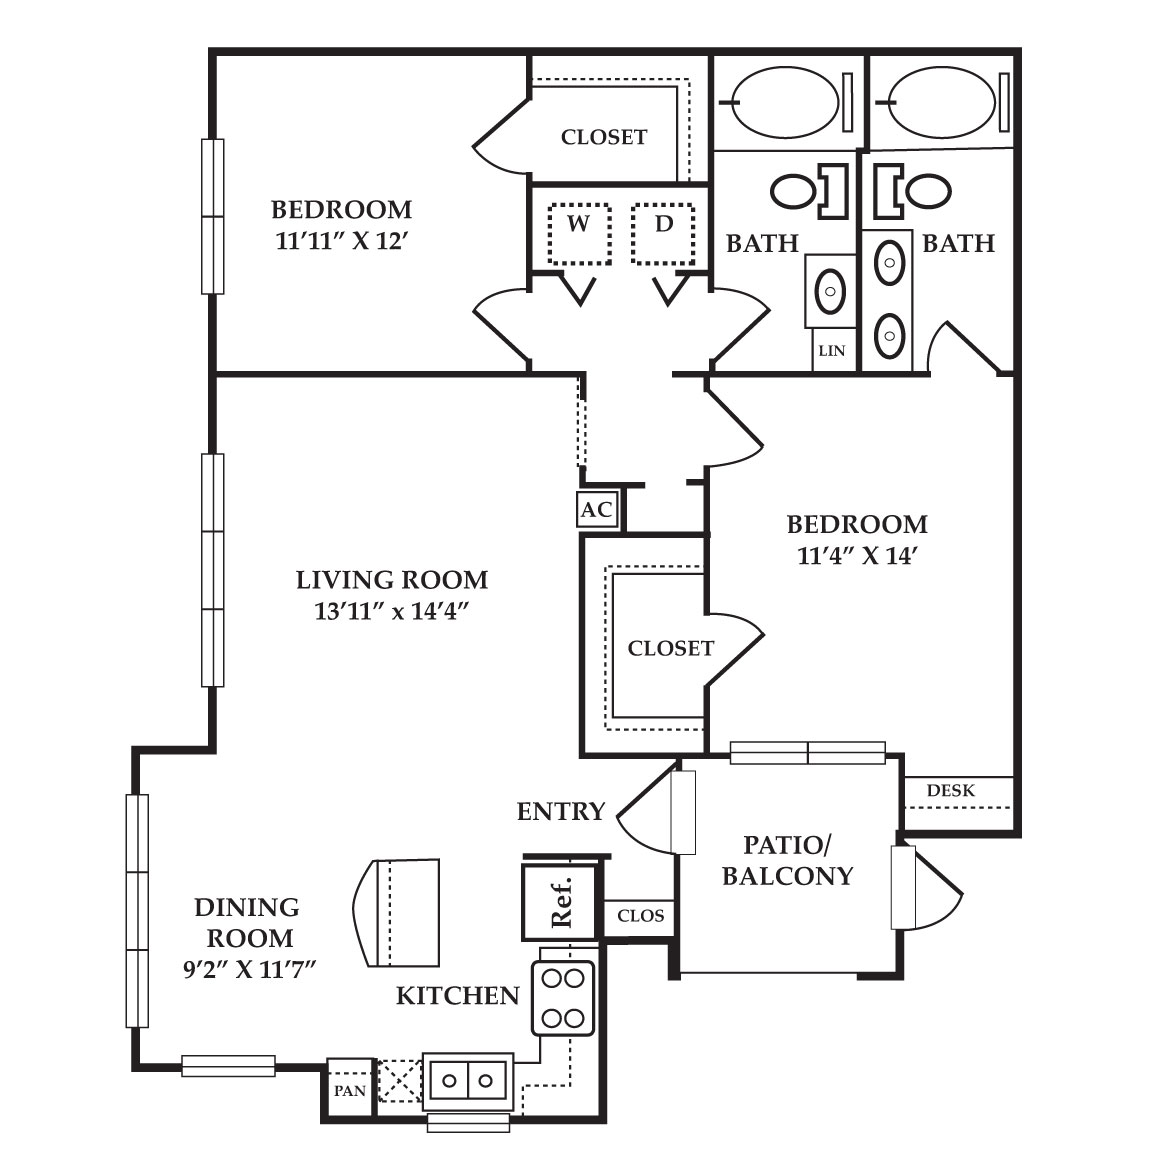 Floorplan - Diamond image